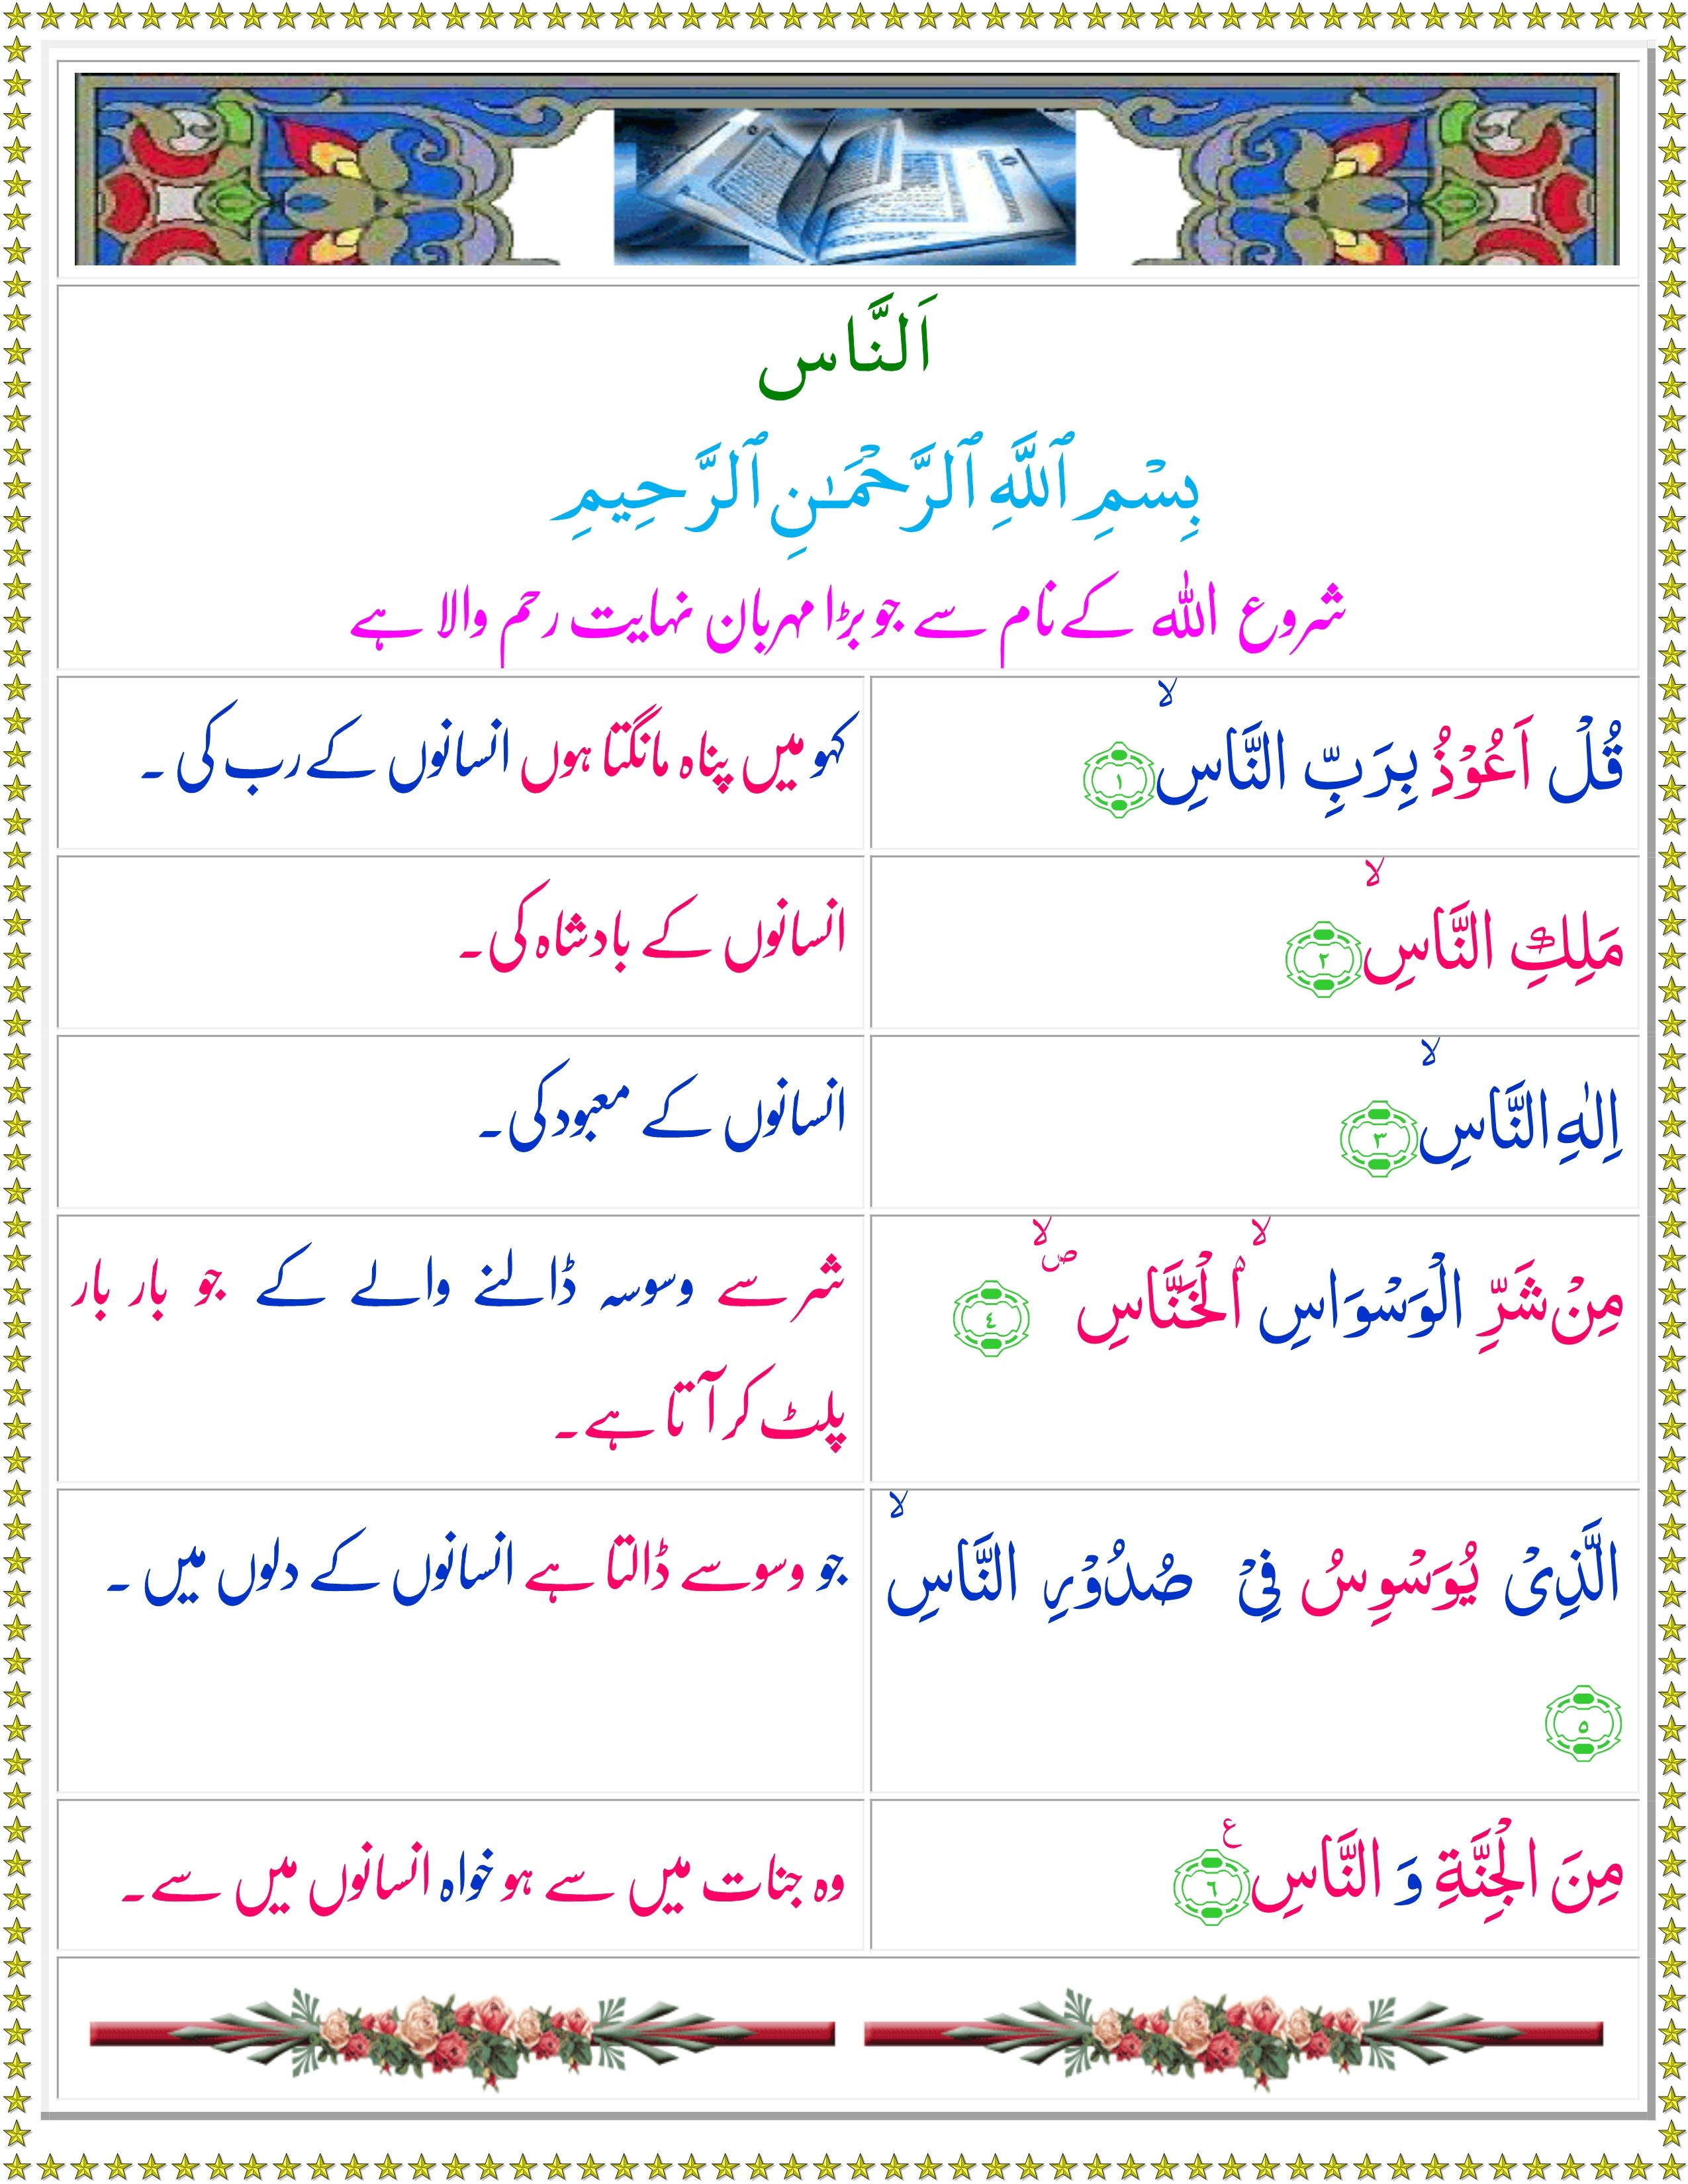 surah nas translation in Urdu, Hindi